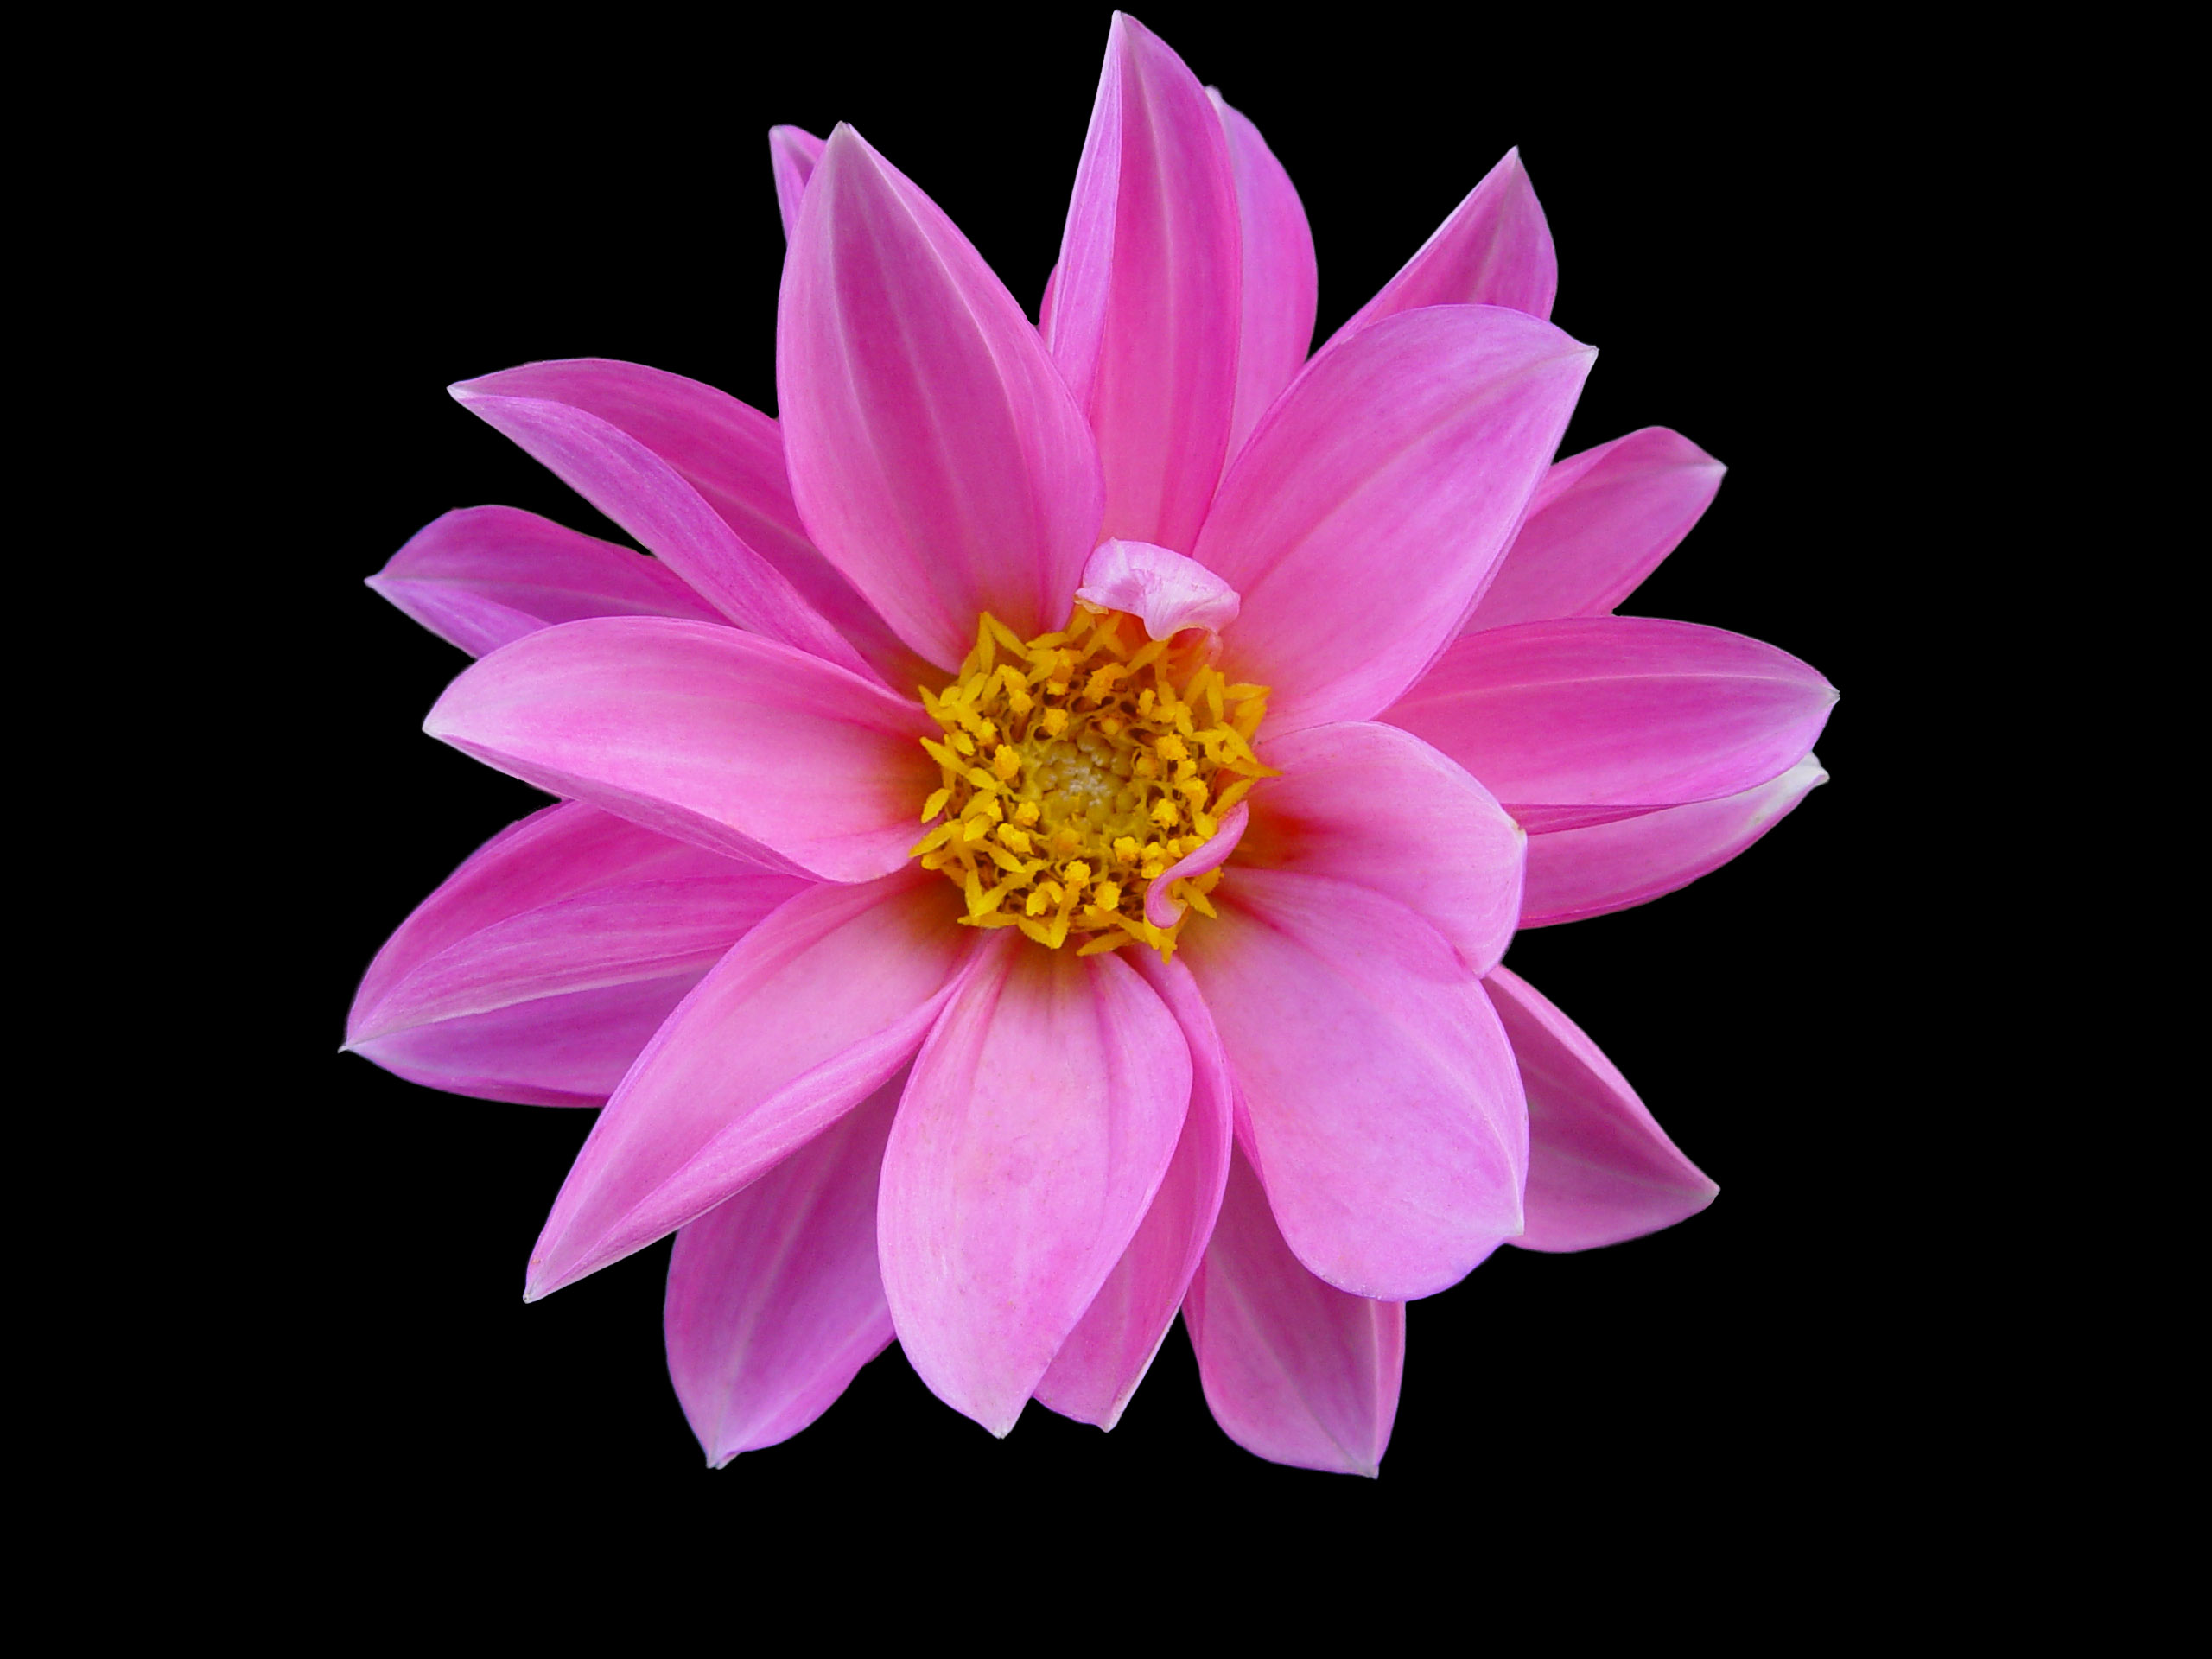 Pink Flower Images 26 HD Wallpapers